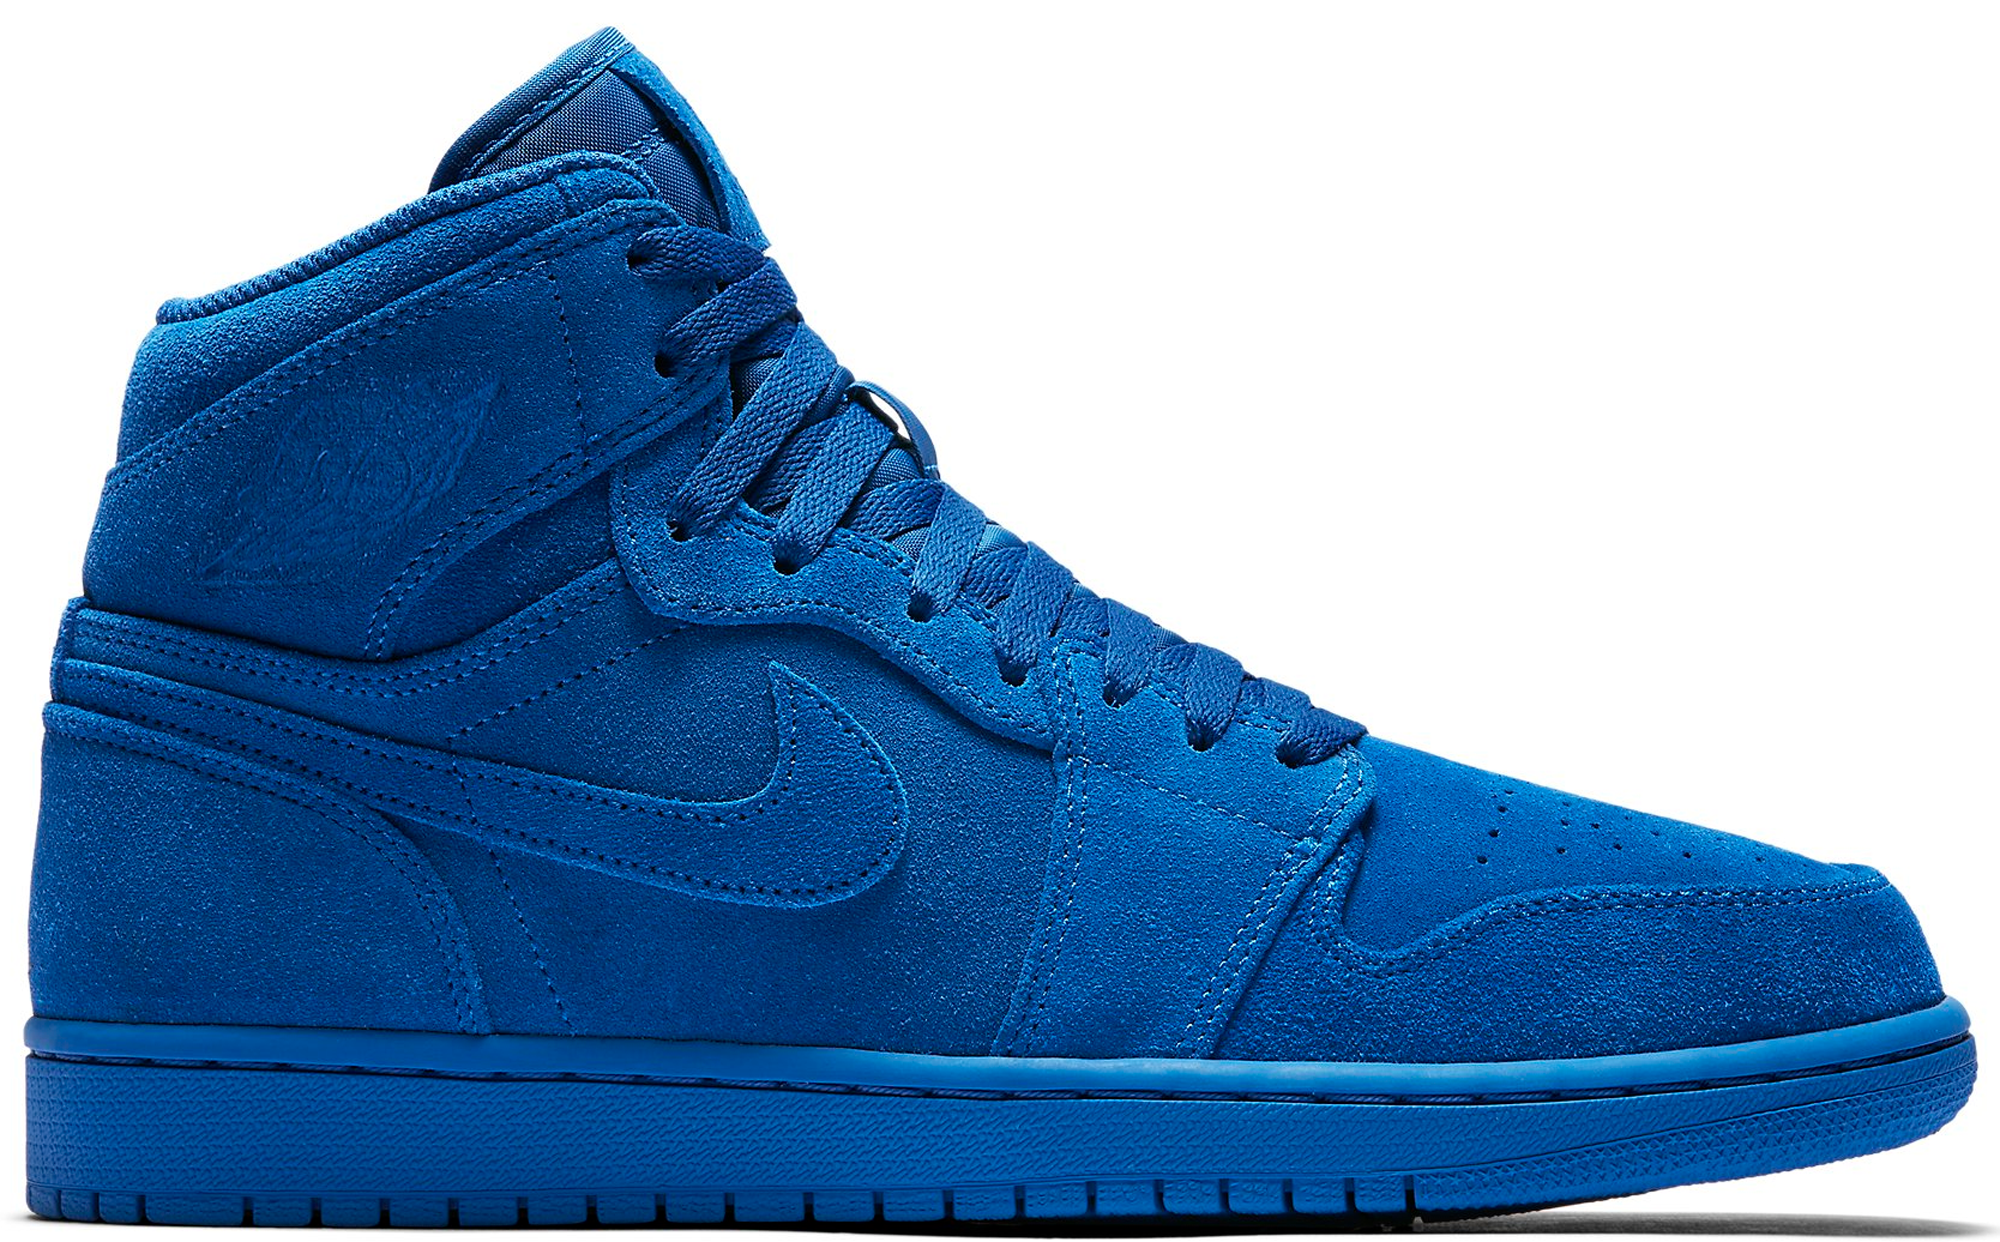 Air jordan 1 retro high royal suede for Jordan royal 1 shirt